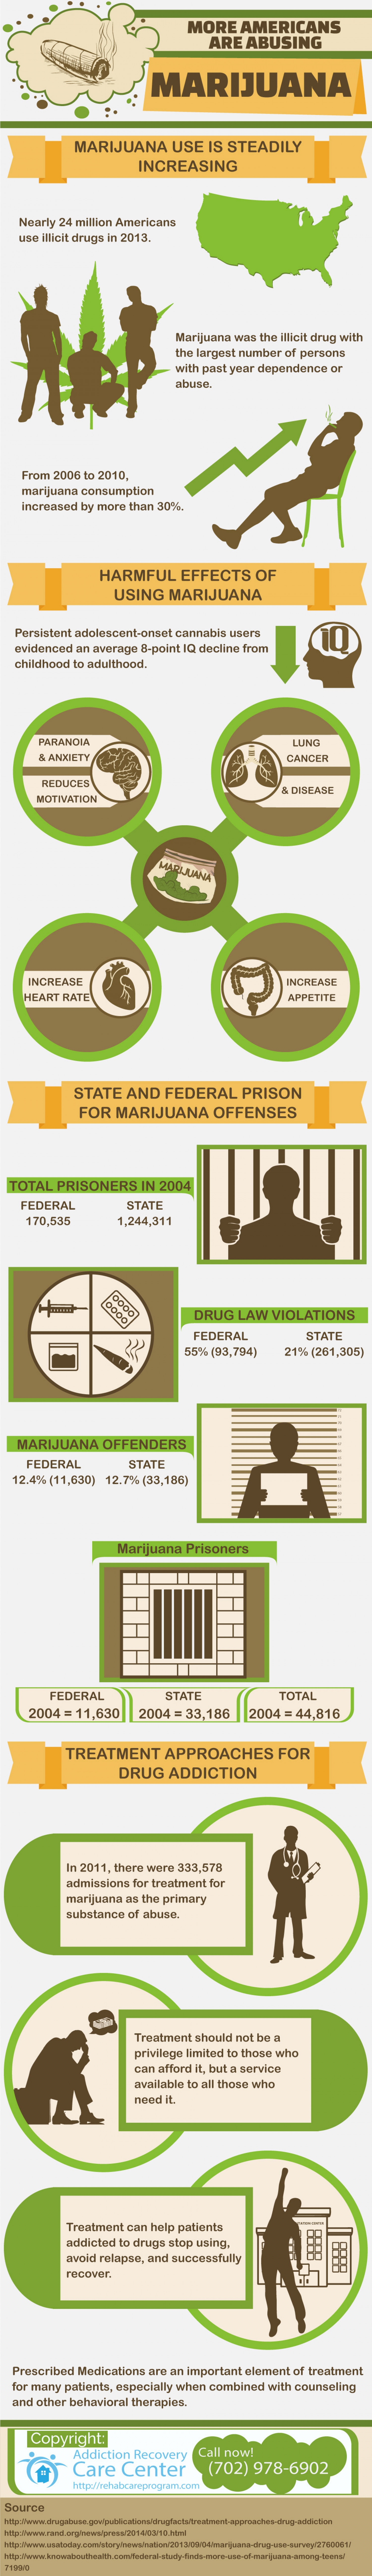 More Americans are Using Marijuana | Addiction Recovery Care Center Infographic